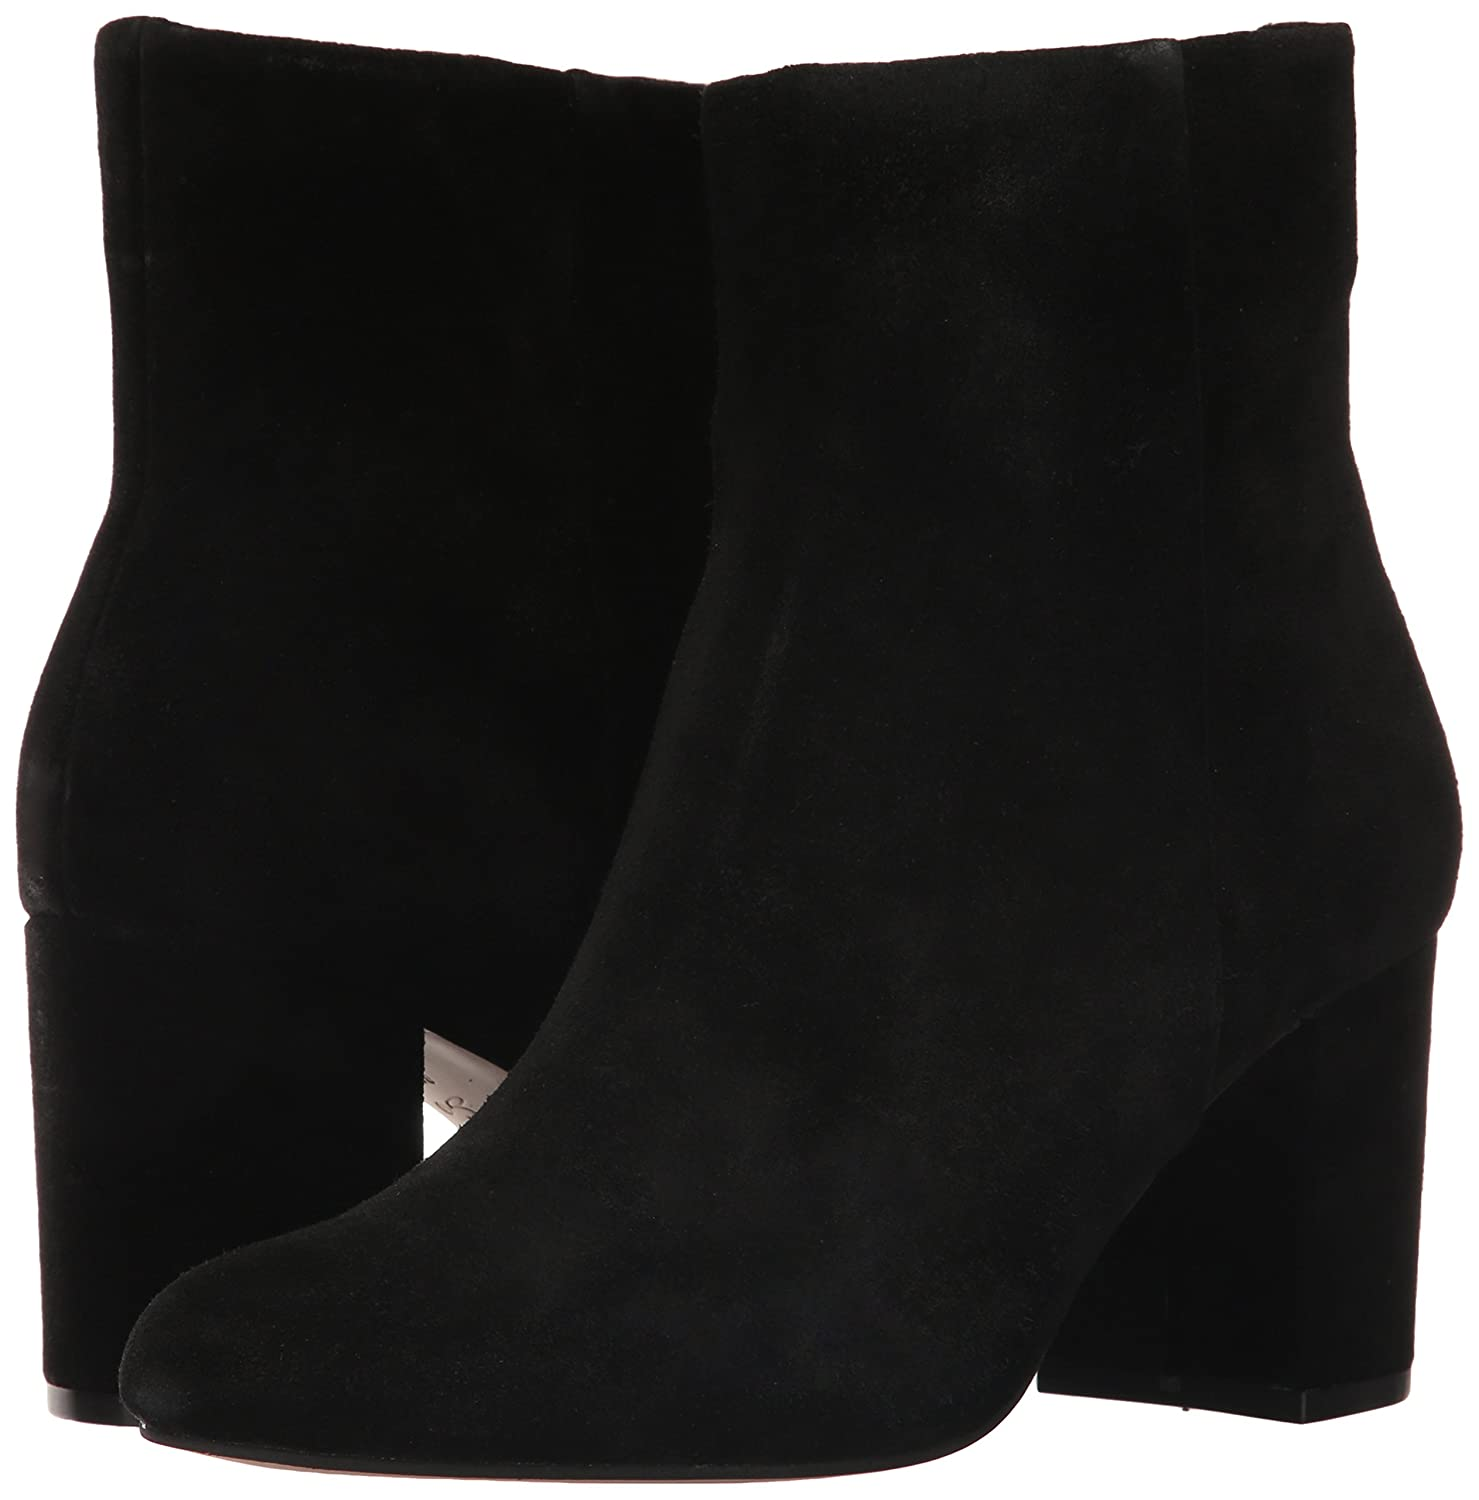 Opportunity Women's Shoes - Corso Como Women's Opportunity Perfecto Ankle Boot B06WD8CN43 9 B(M) US|Black Split Suede 297e19